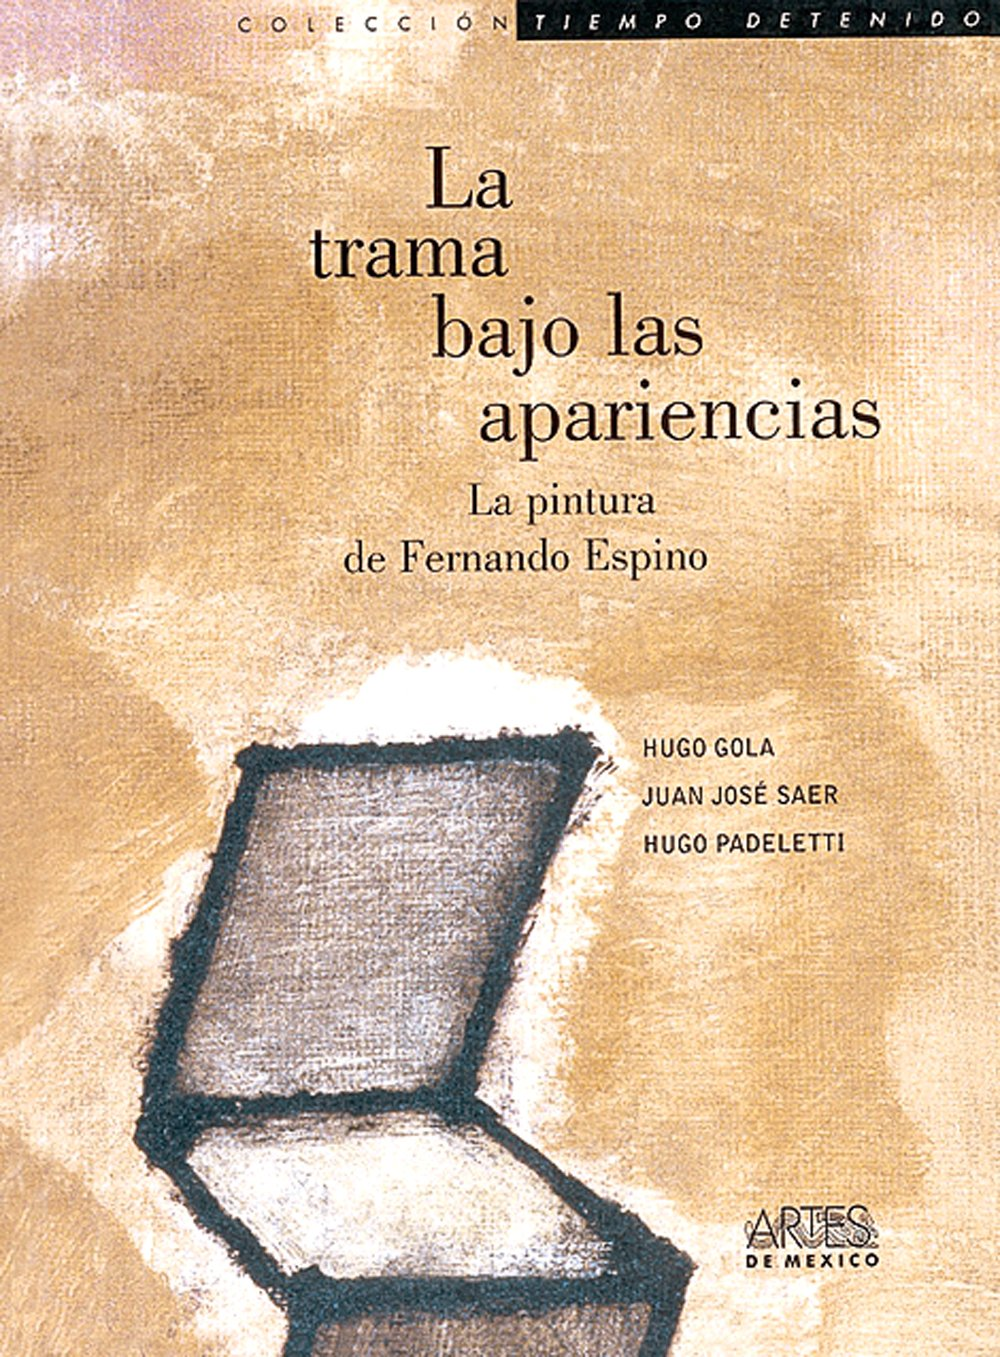 Download La trama bajo las apariencias: La pintura de Fernando Espino (The Underlying Weave: The Painting of Fernando Espino) (Colección Tiempo detenido) (Spanish Edition) pdf epub